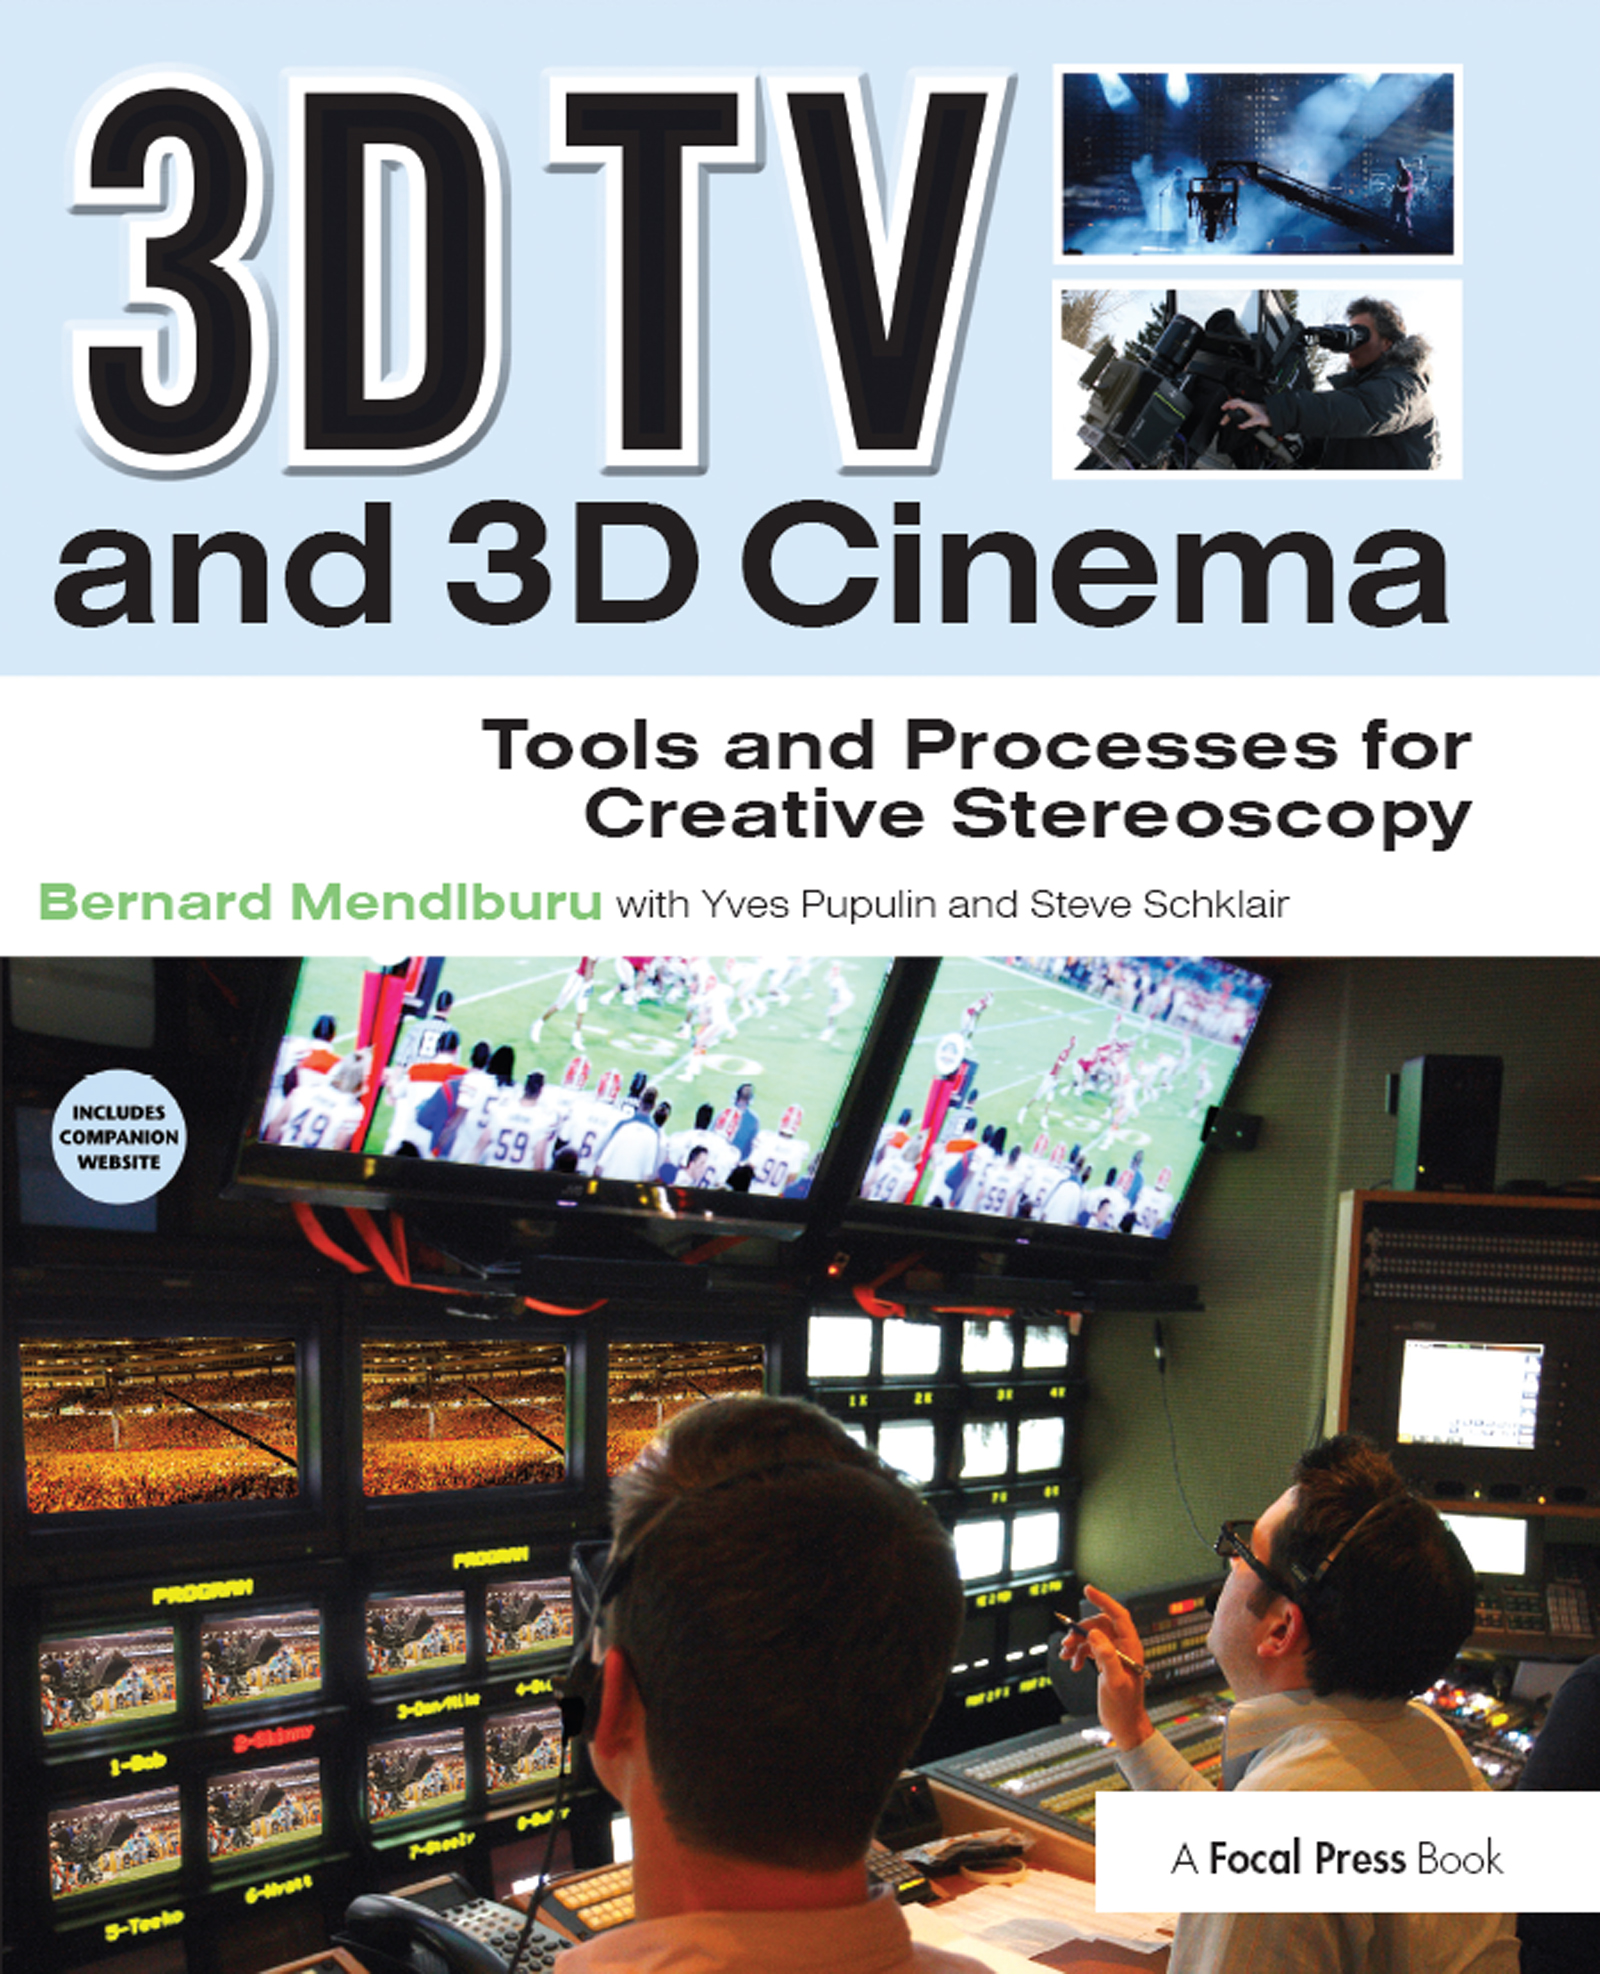 3D TV and 3D Cinema: Tools and Processes for Creative Stereoscopy book cover